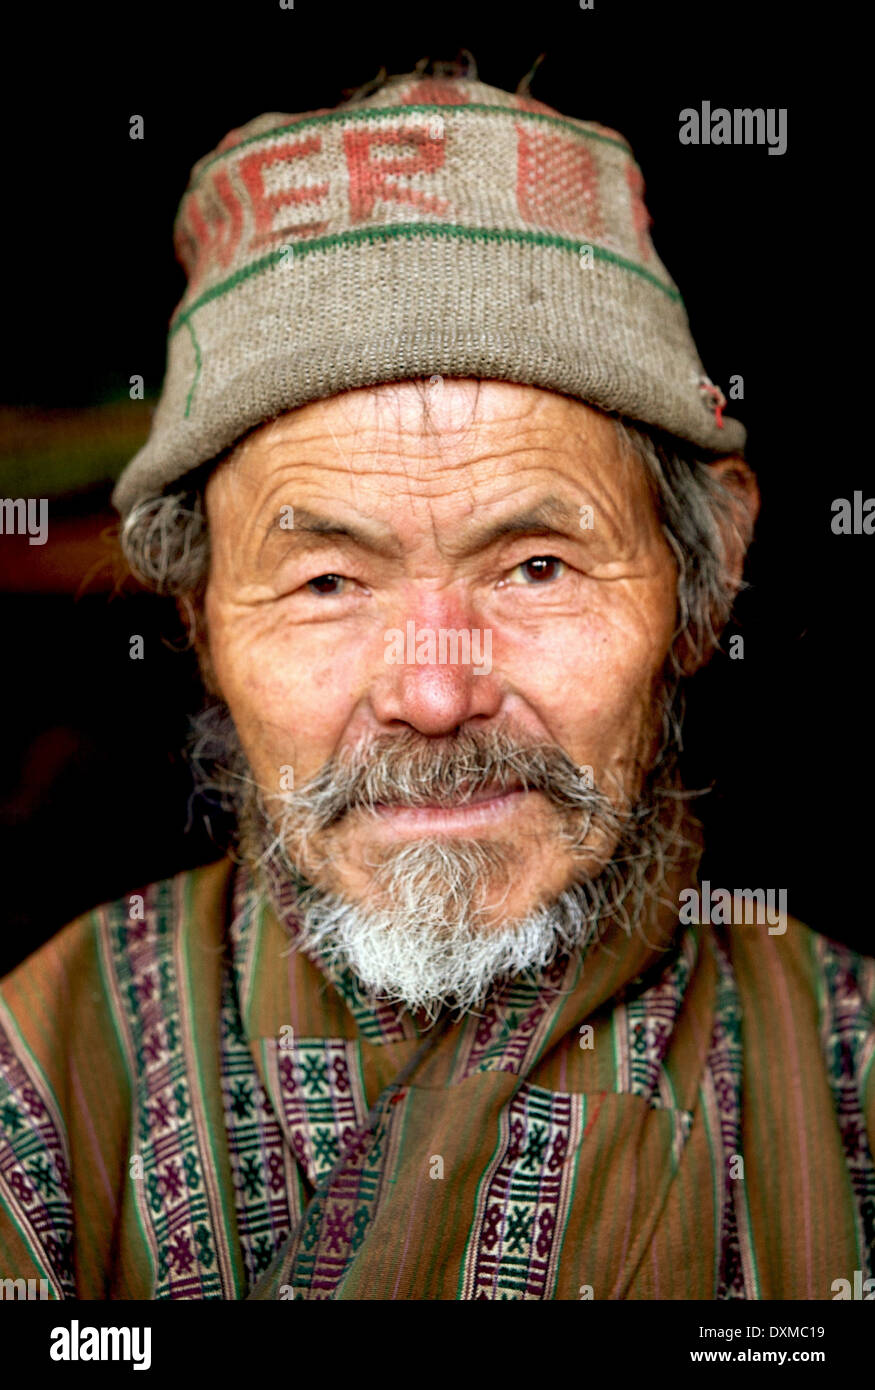 Bhutanese man in woolen hat. Digitally Manipulated Image. Stylised by sharpening and enhancing color. - Stock Image